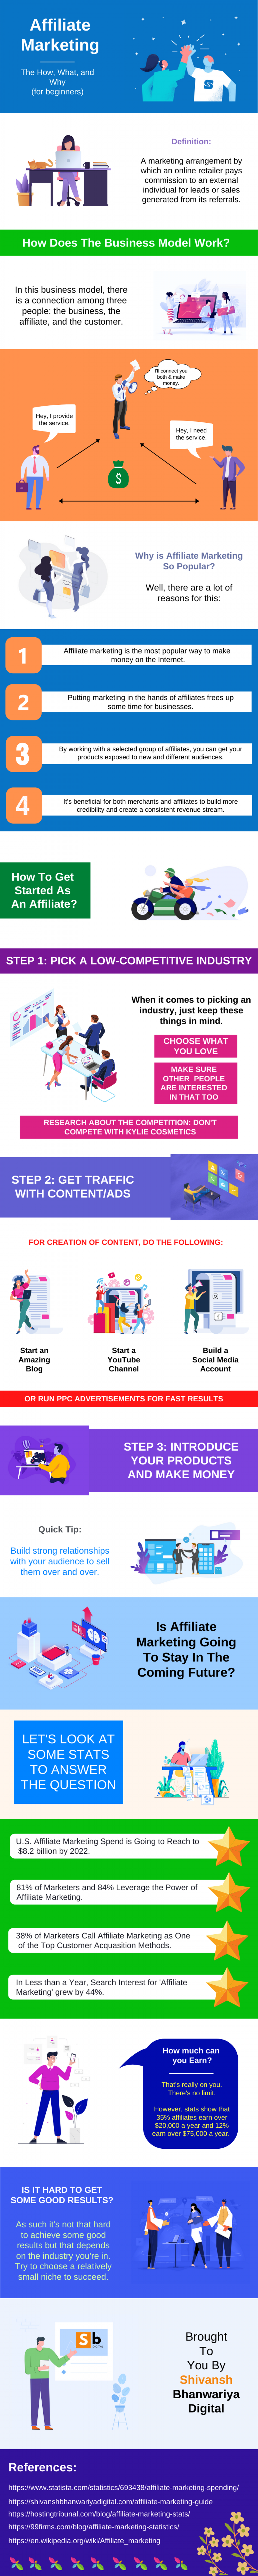 What is Affiliate Marketing: An Engaging Infographic Infographic